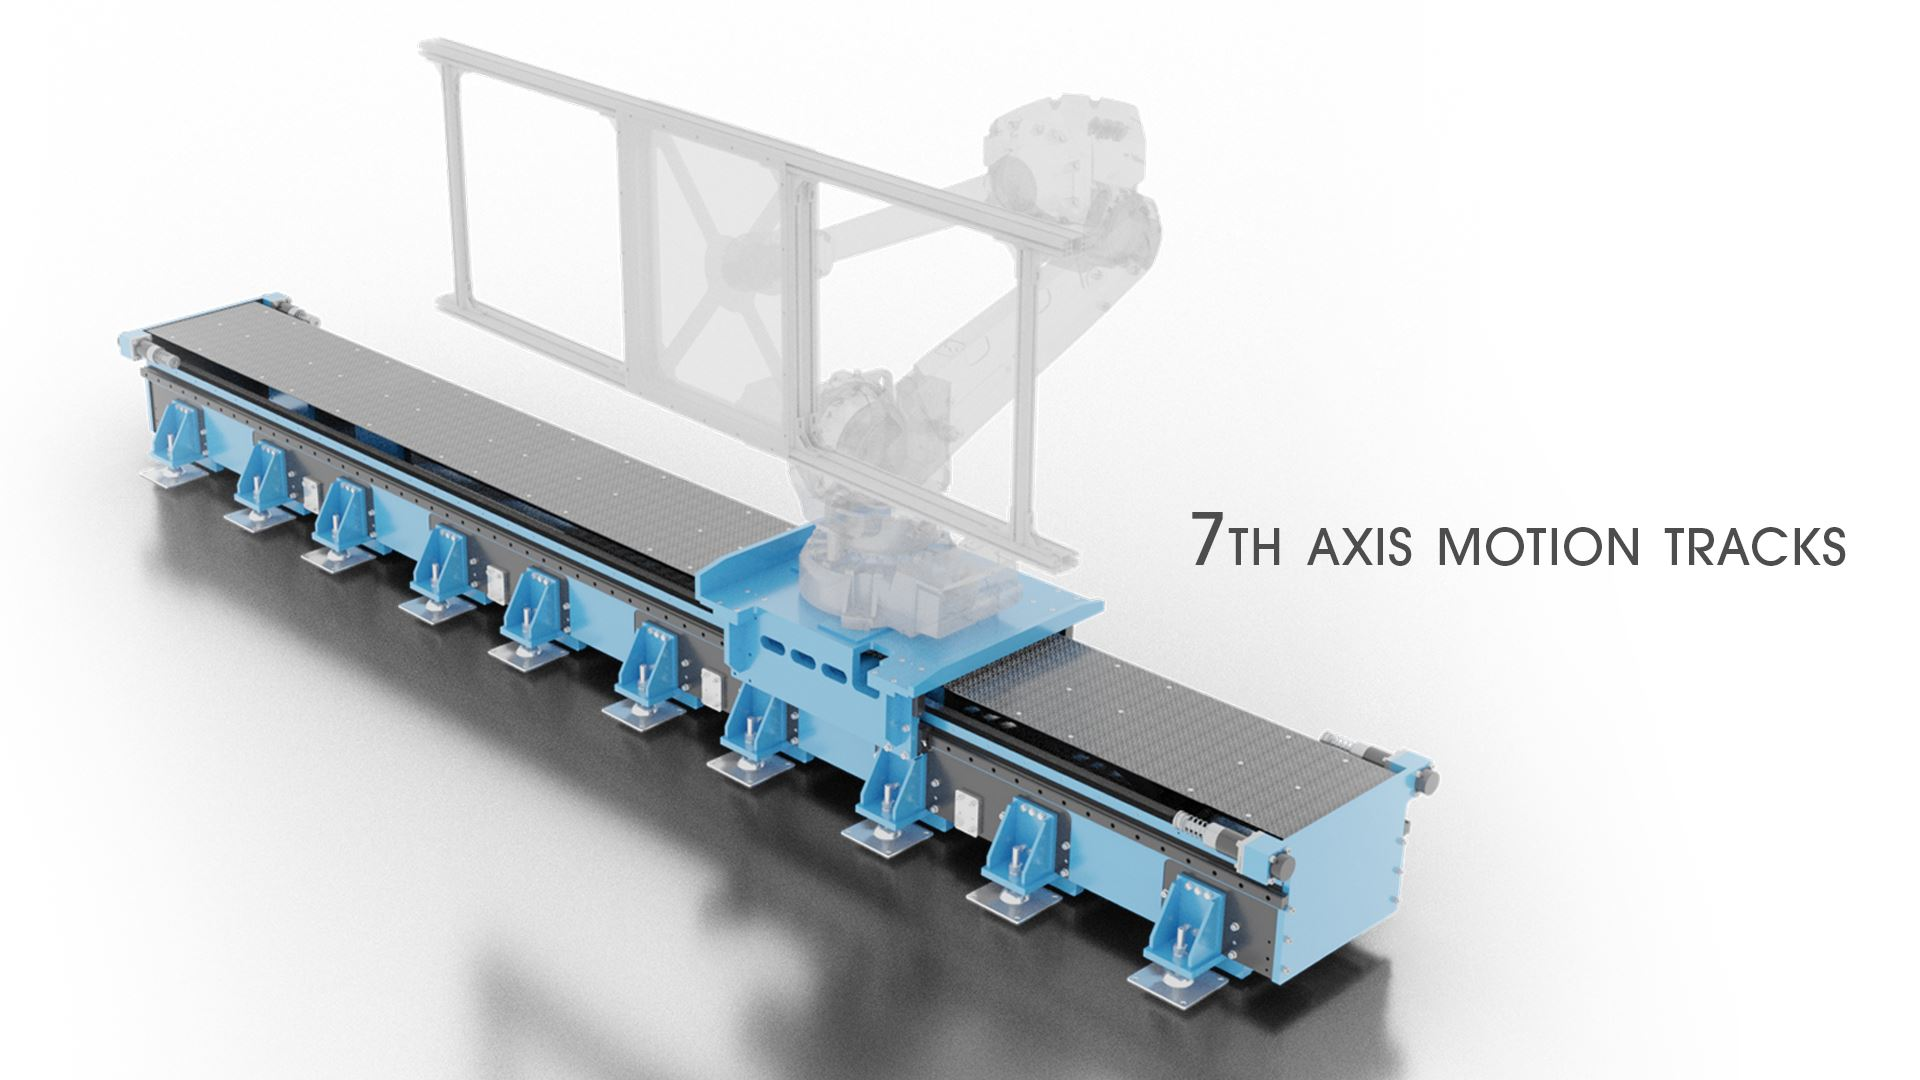 Seventh axis motion track